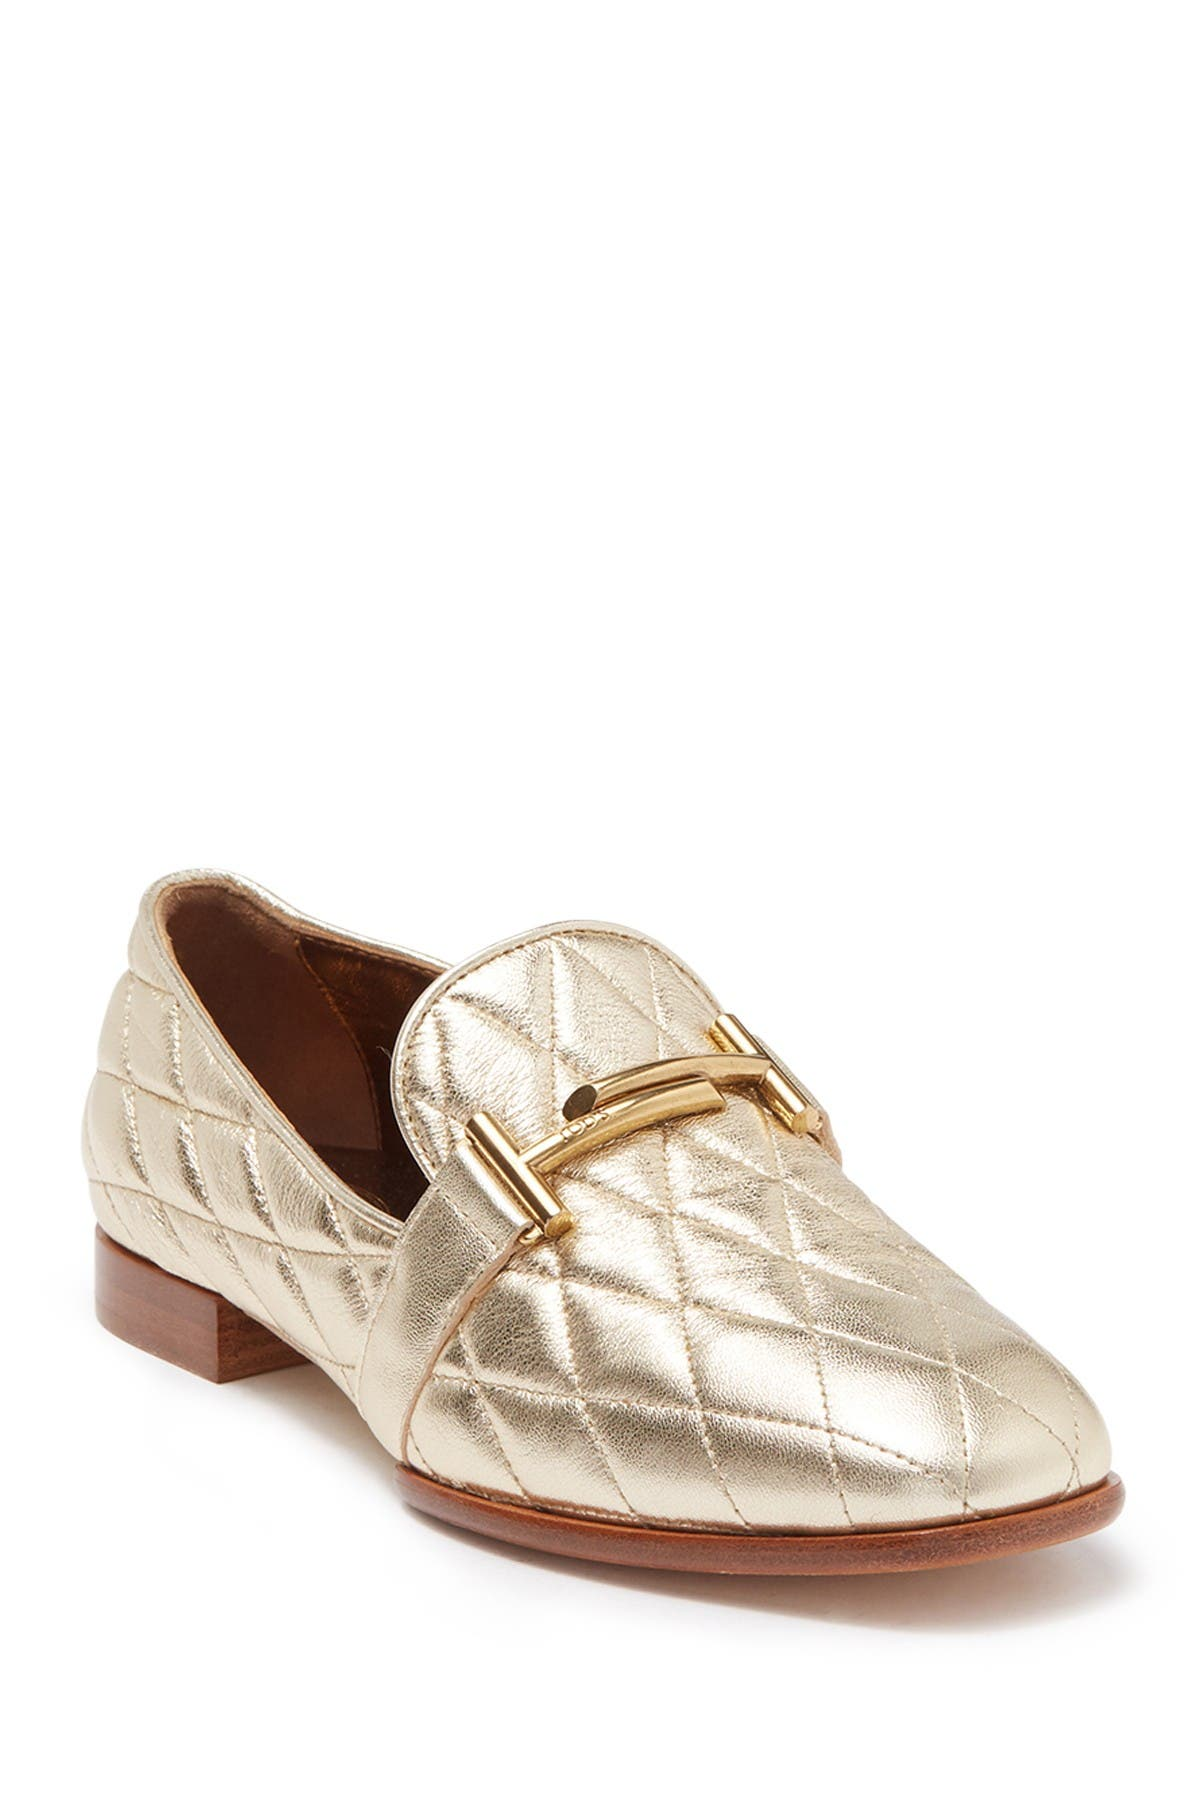 Image of Tod's Metallic Quilted Leather Bit Loafer